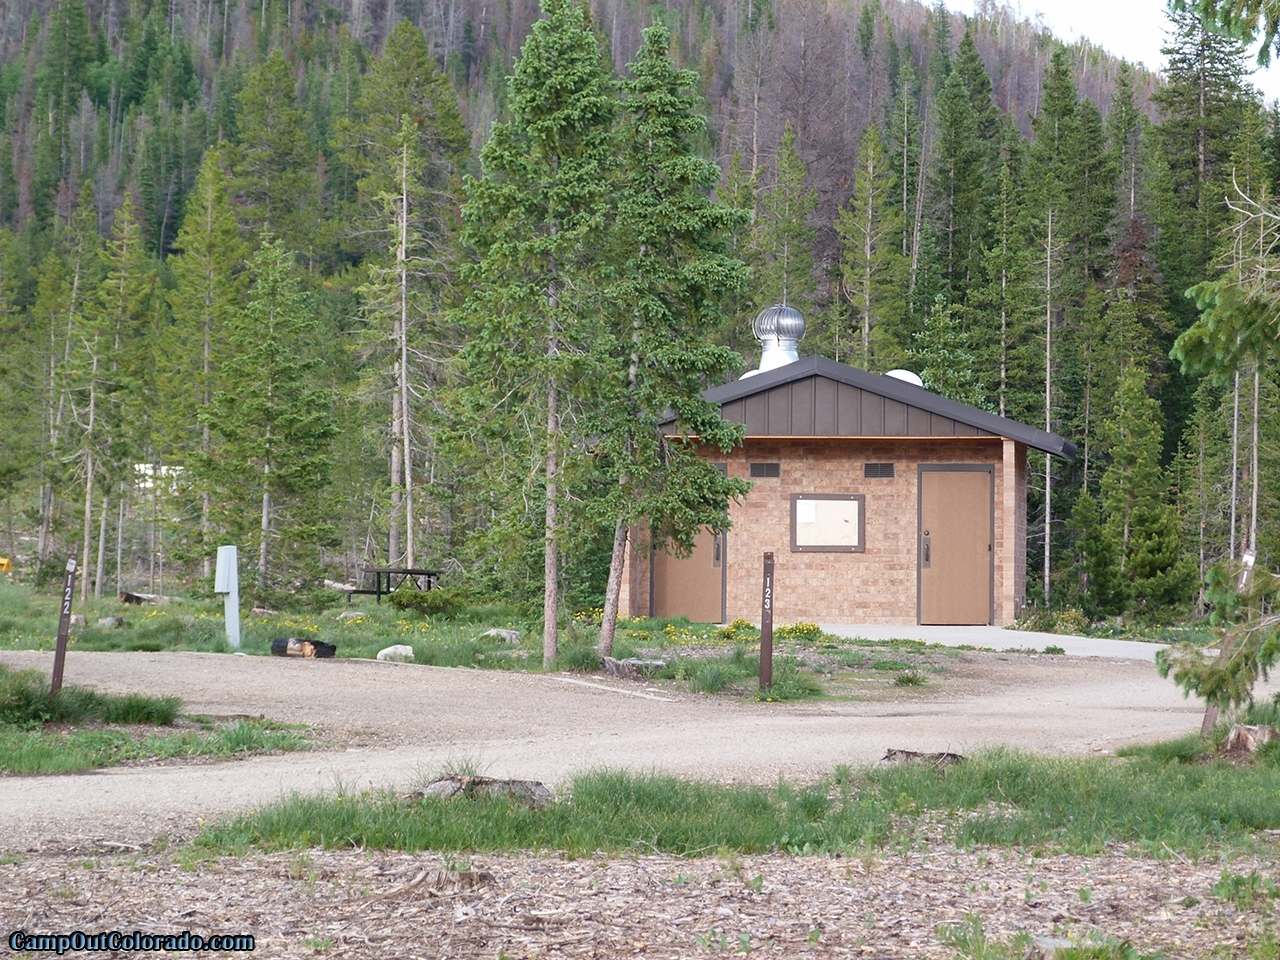 camp-out-colorado-ranger-lakes-campground-outhouse.jpg